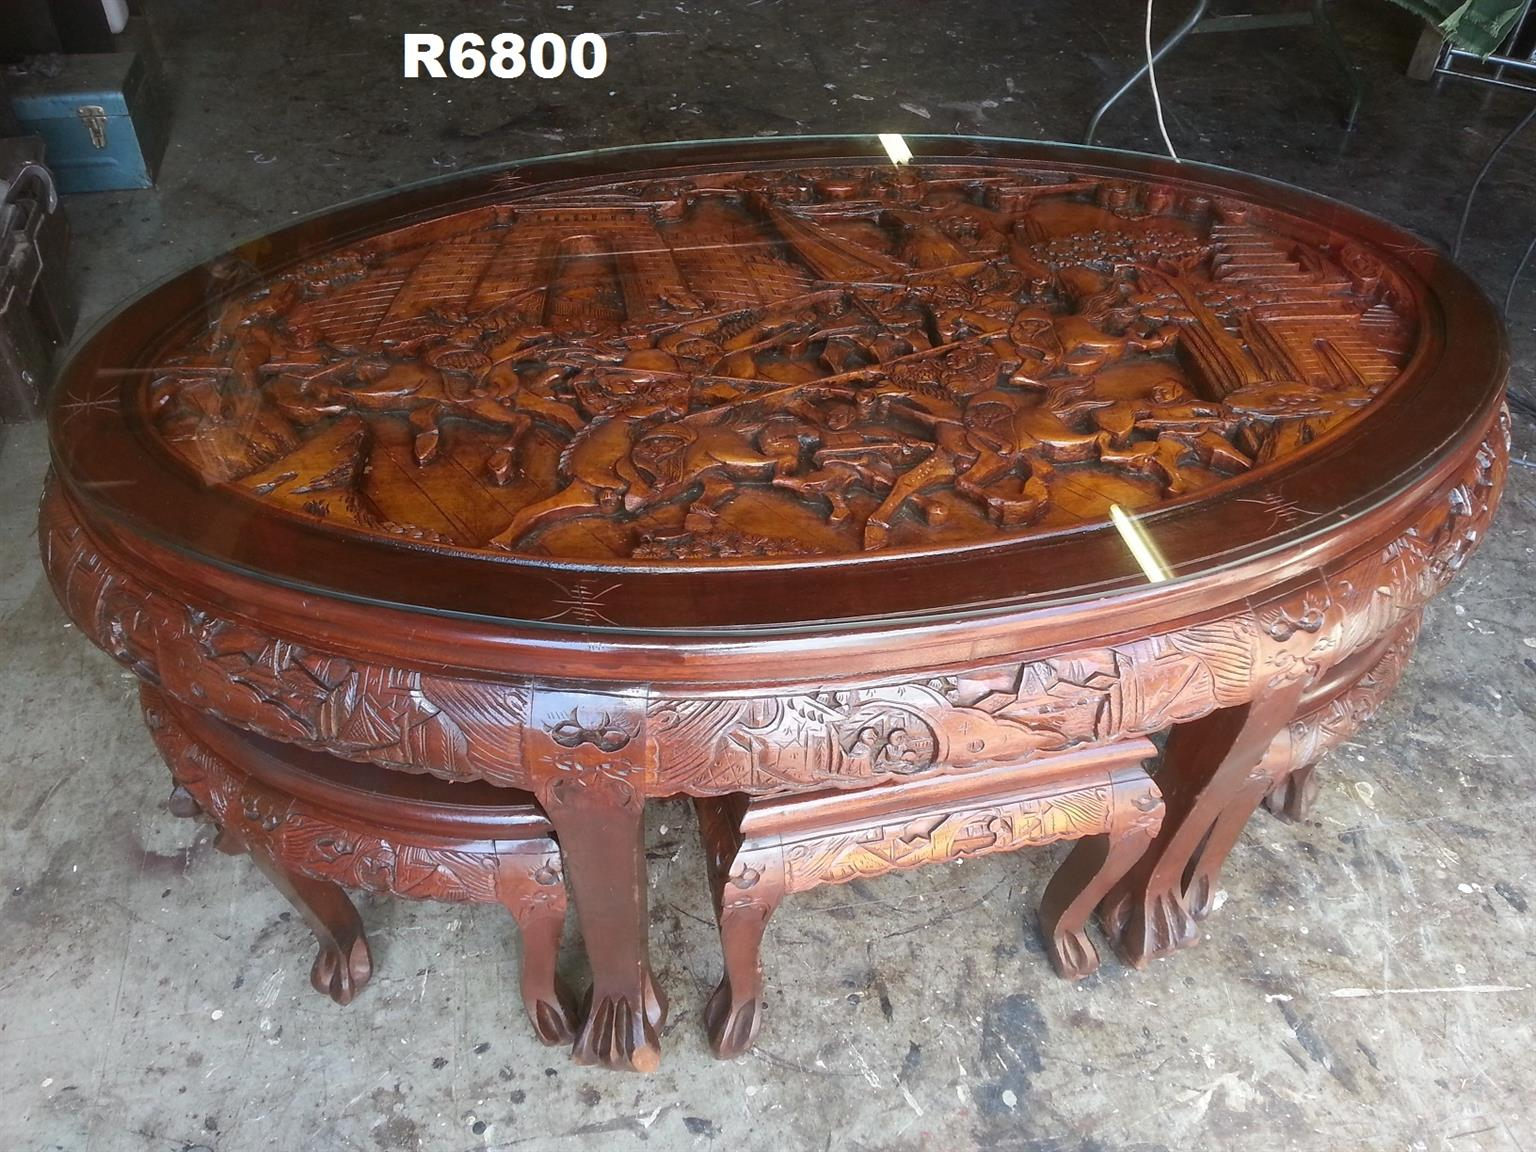 Groovy Carved Chinese Coffee Table With 6 Stools Rascalartsnyc Gmtry Best Dining Table And Chair Ideas Images Gmtryco